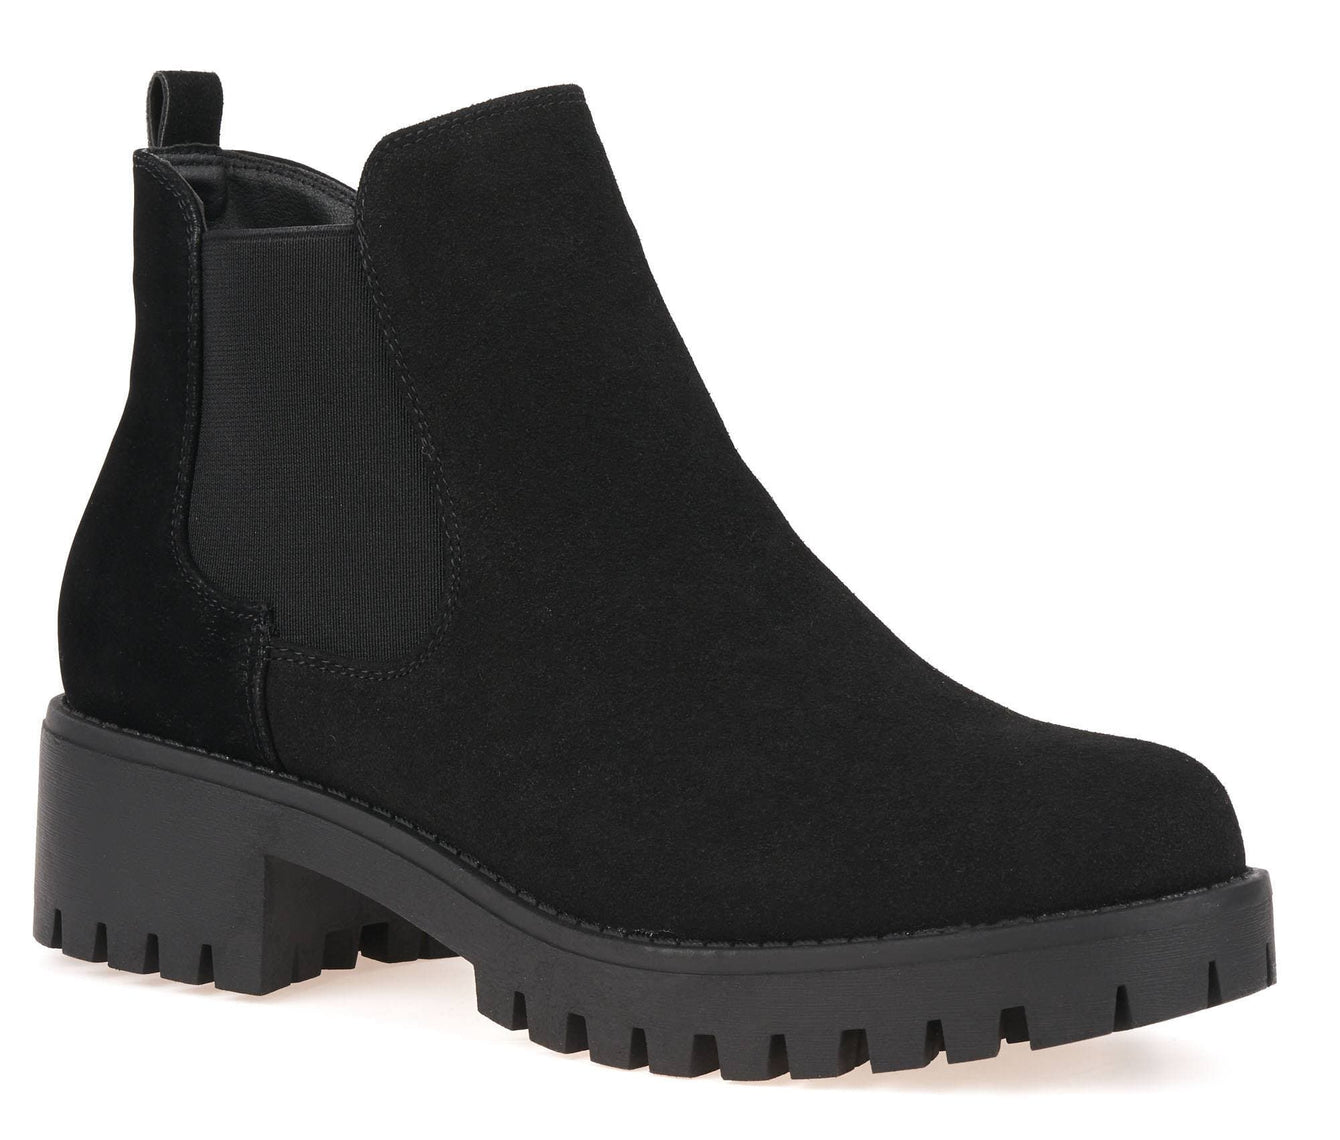 Elastic Cleated Sole Ankle Boot in Black Suede